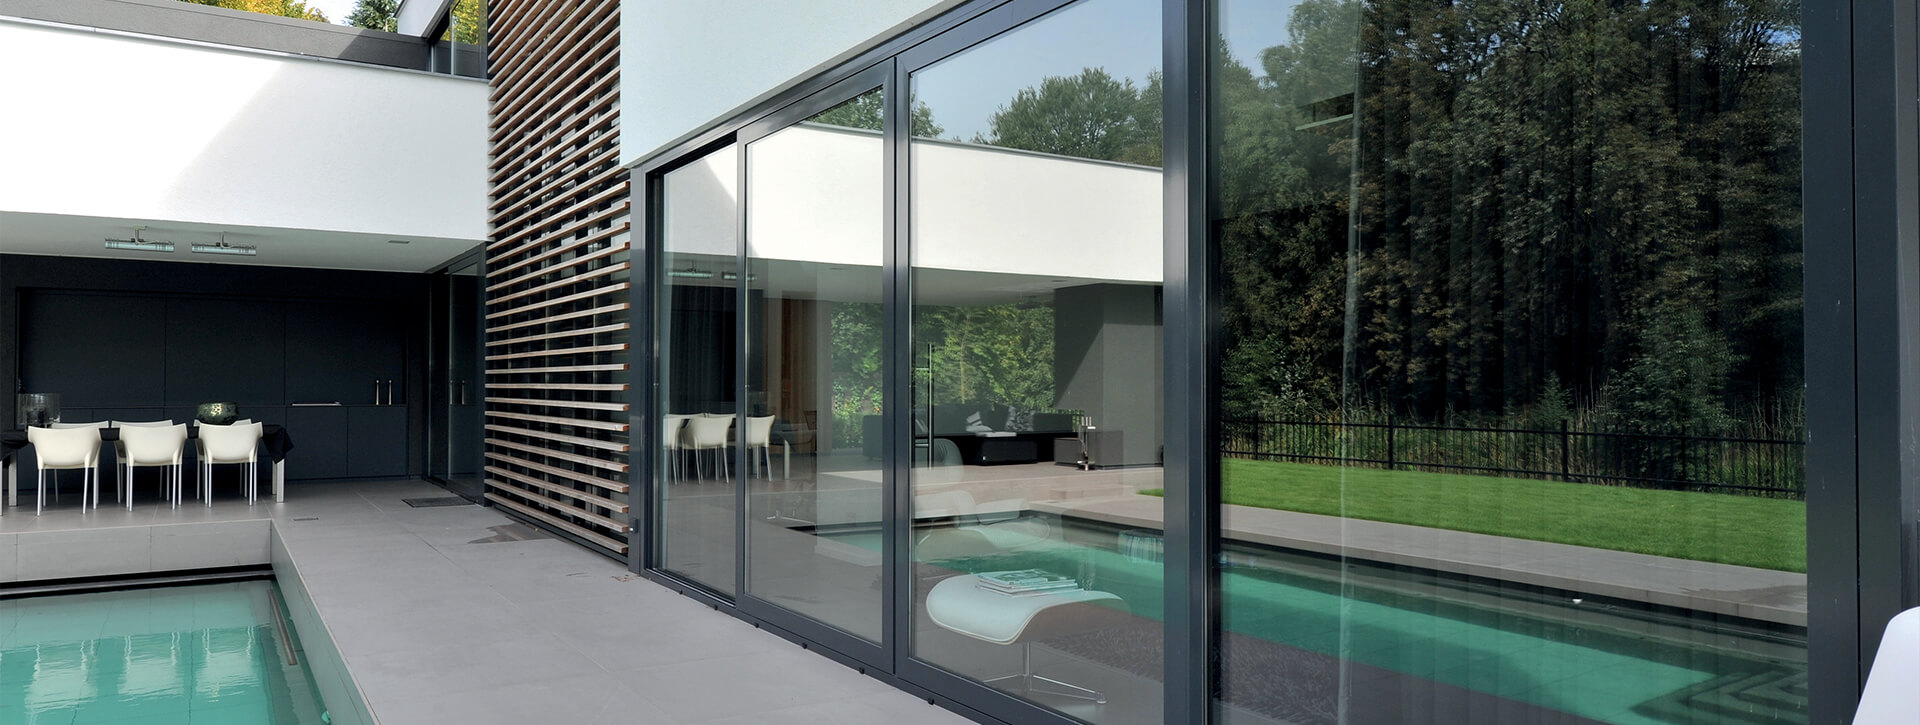 Best Sliding Glass Doors 2020.Patio Doors In Greater Manchester Droylsden Glass